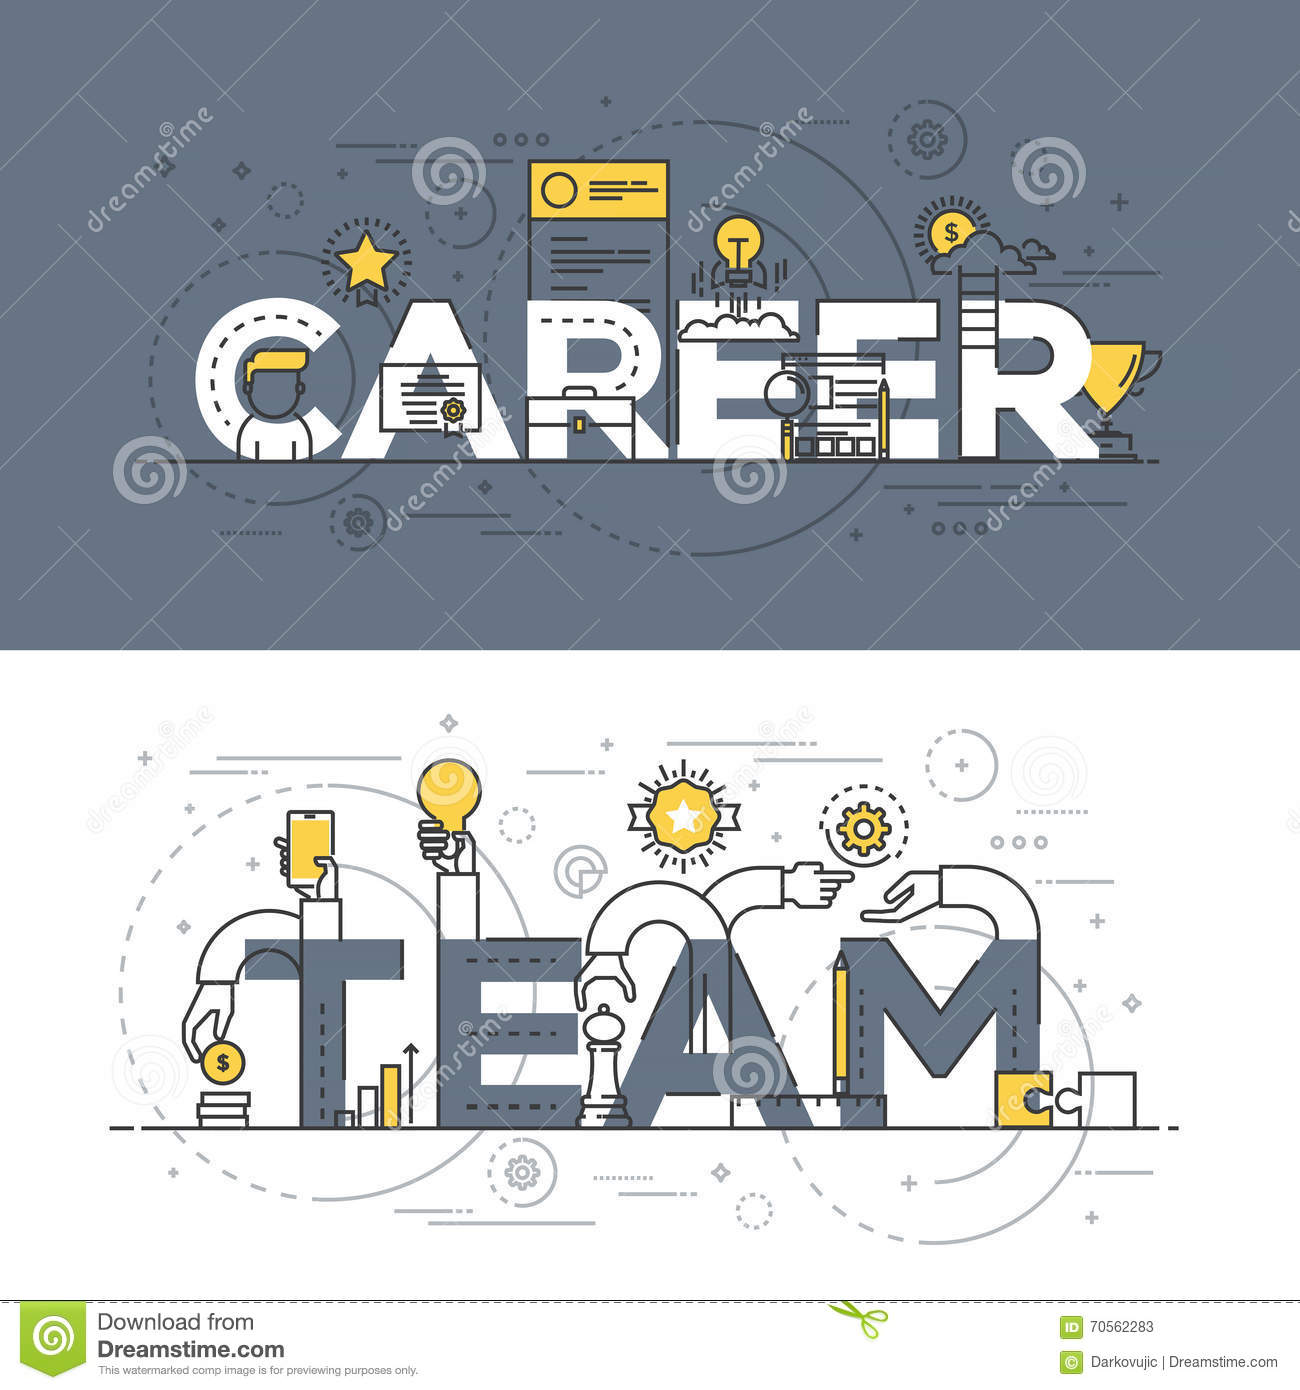 Career Vision Career Vision Career Advancement Transition Coaching Faith Popcorn On The Future Of The Workplace Business Insider Career Vision Workshops Wantget On Career Coaching